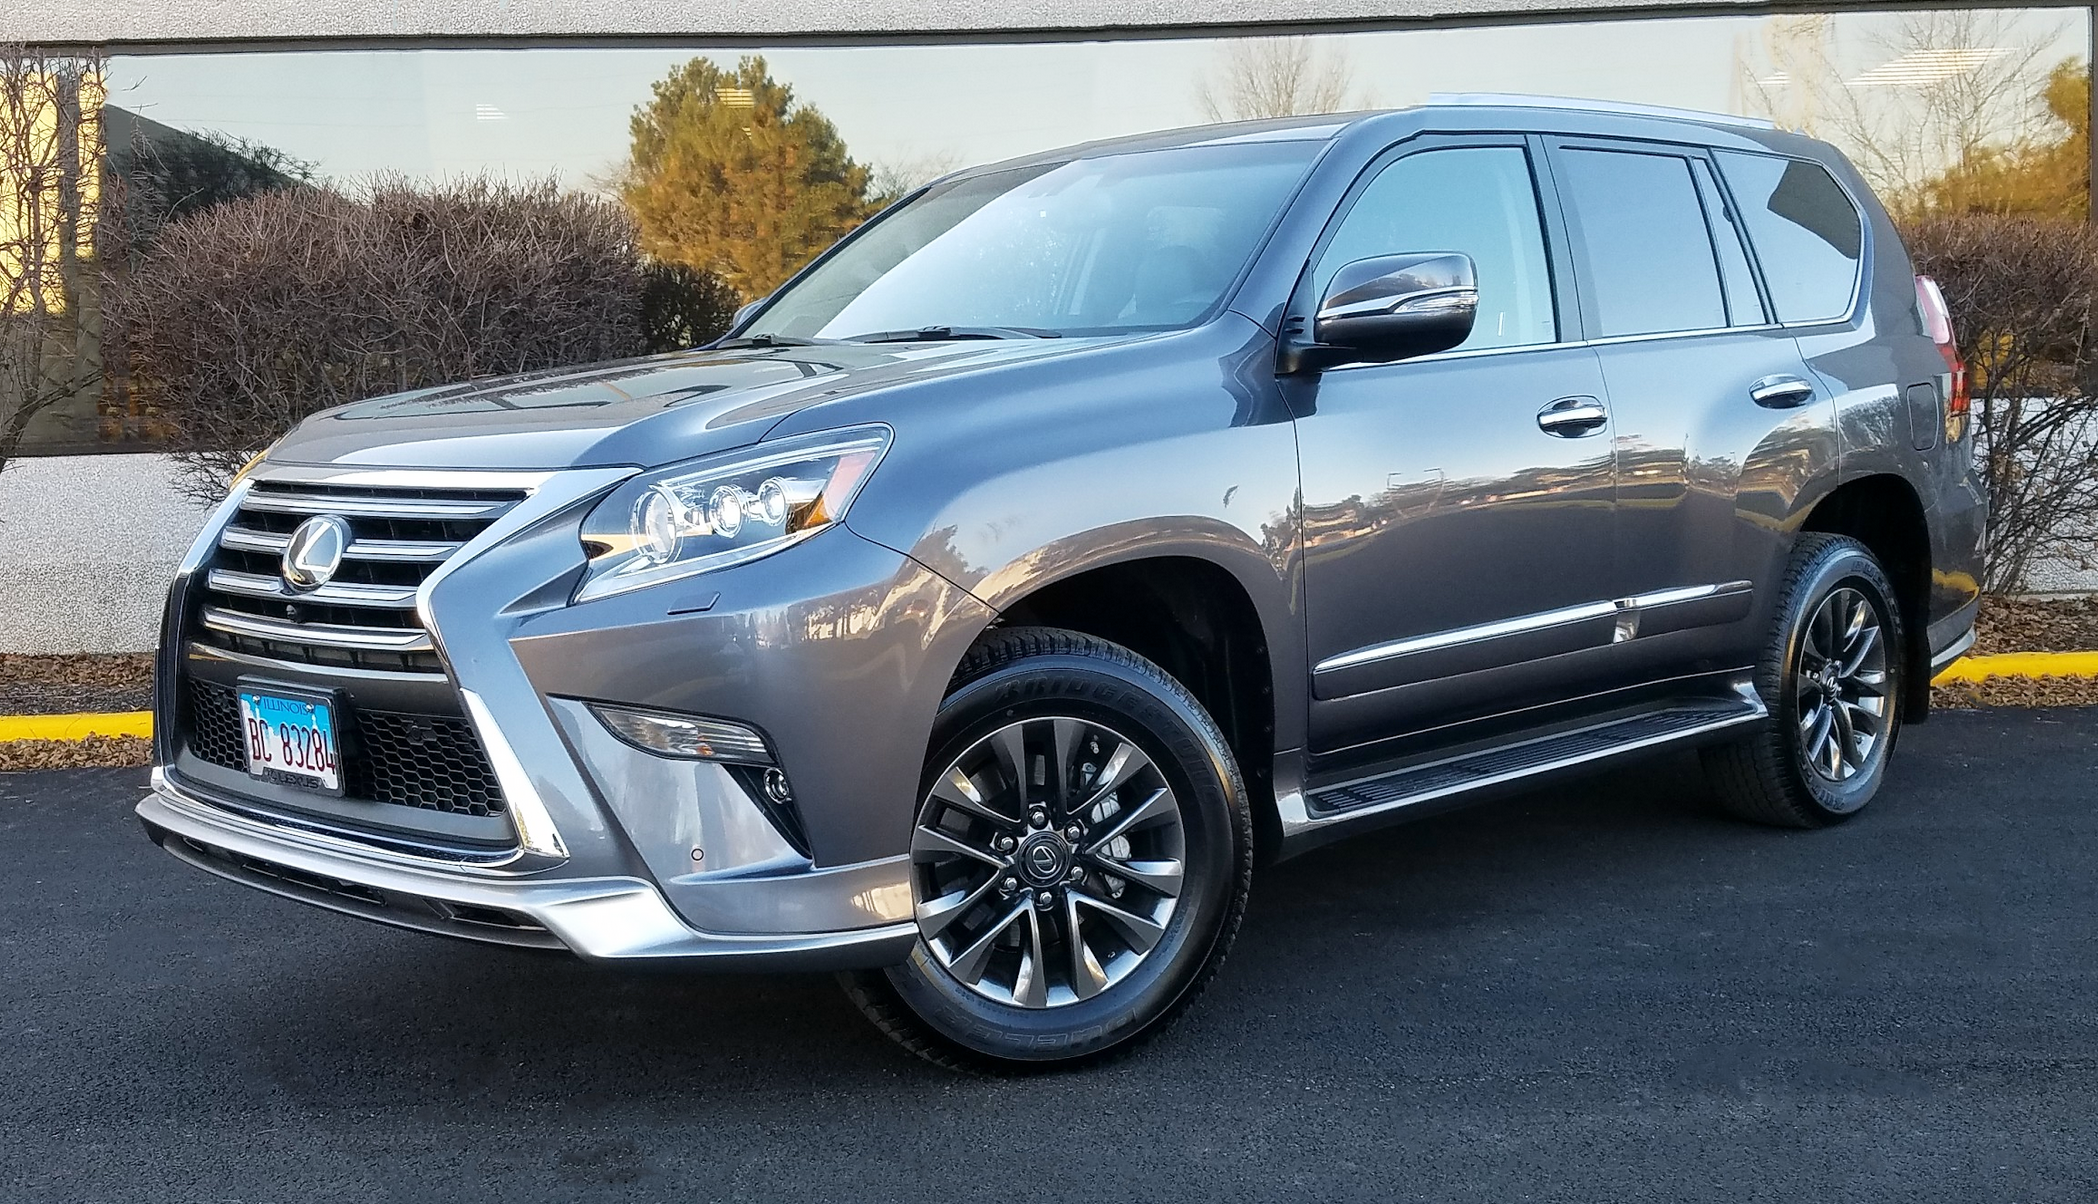 Used Lexus Gx >> Test Drive: 2019 Lexus GX 460 | The Daily Drive | Consumer Guide® The Daily Drive | Consumer Guide®